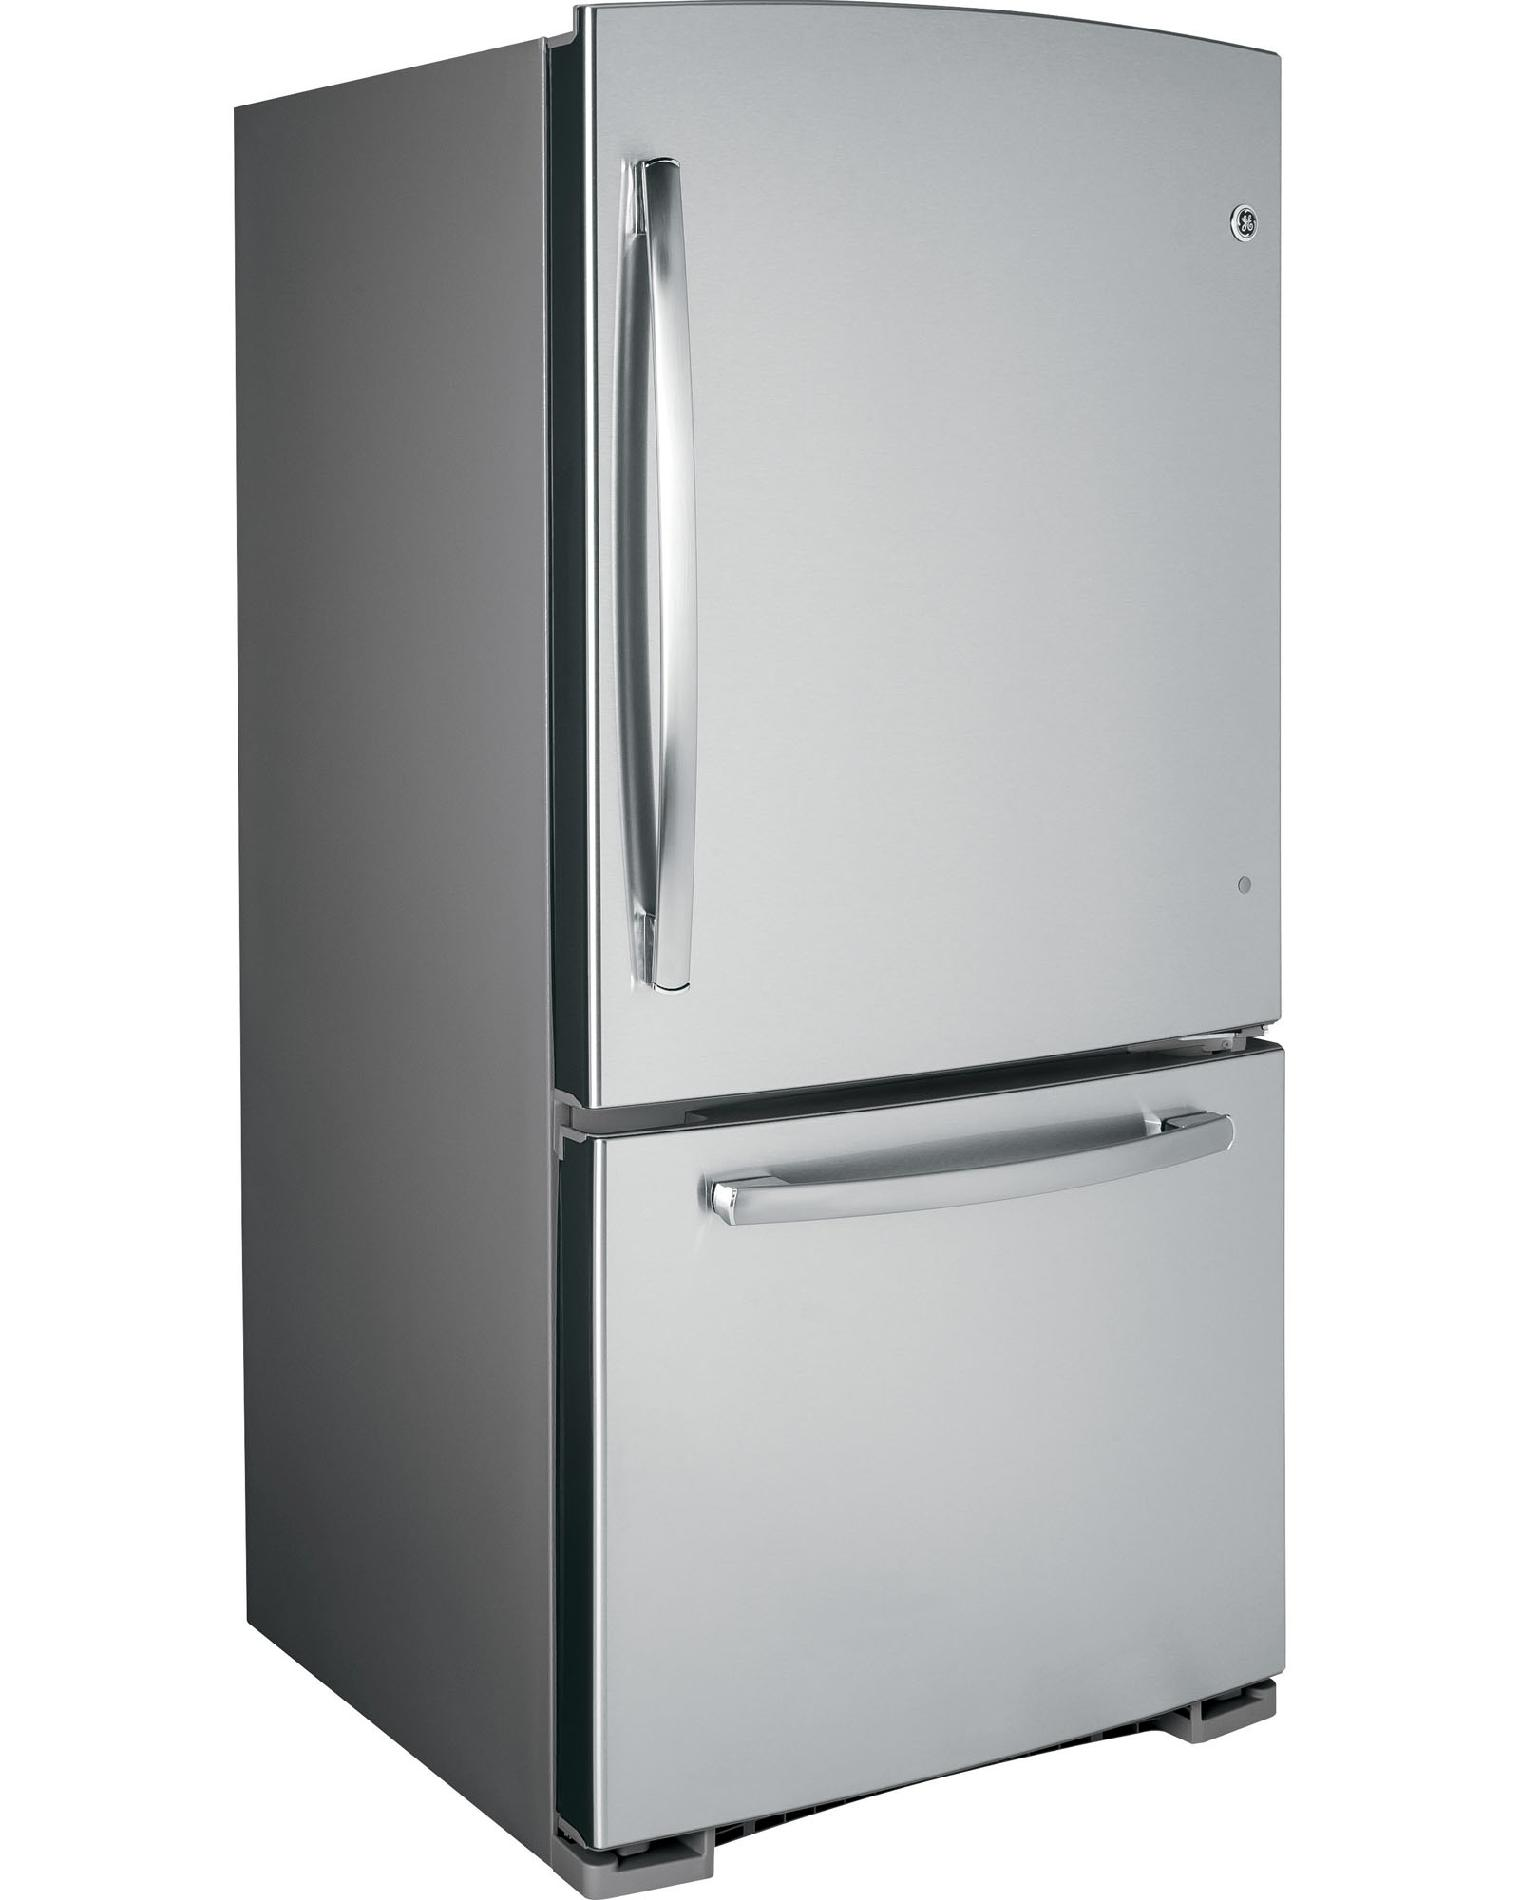 GE Appliances 20.2 cu. ft. Built-in Bottom-Freezer Refrigerator - Stainless Steel